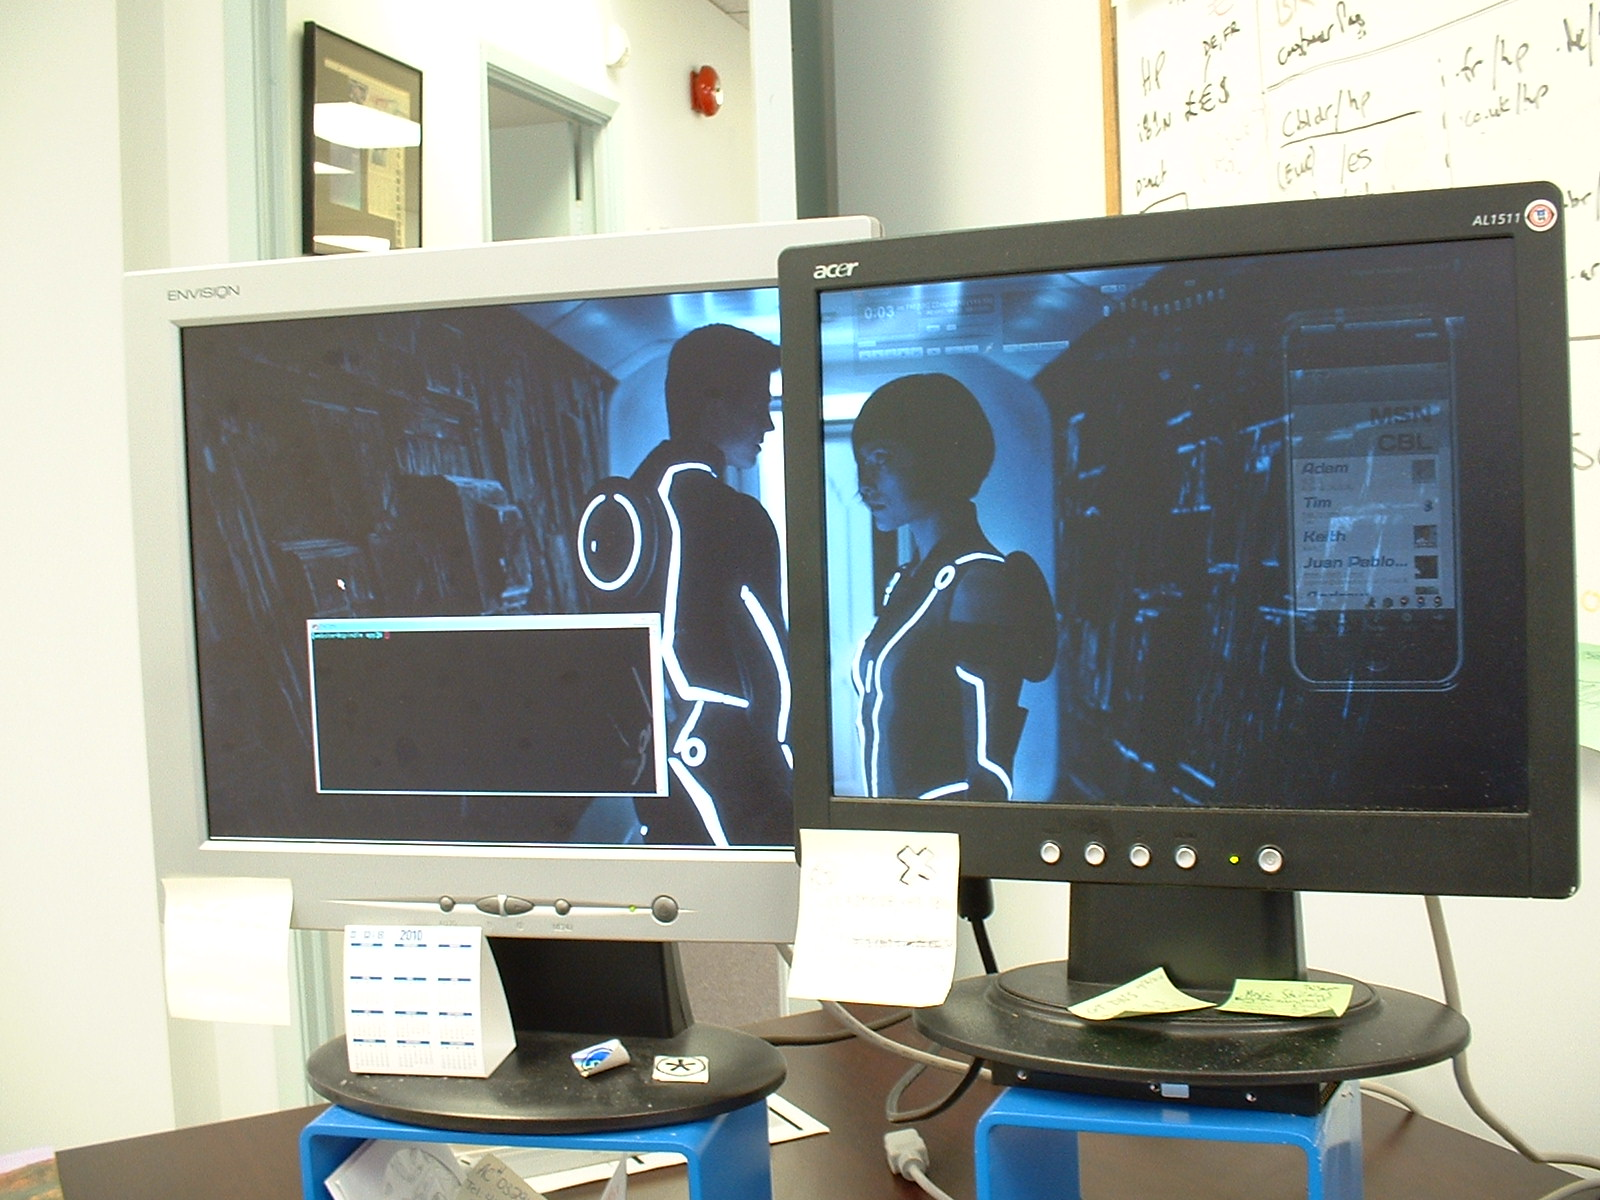 yesterday s cheese tron legacy dual monitor desktop wallpaper in action